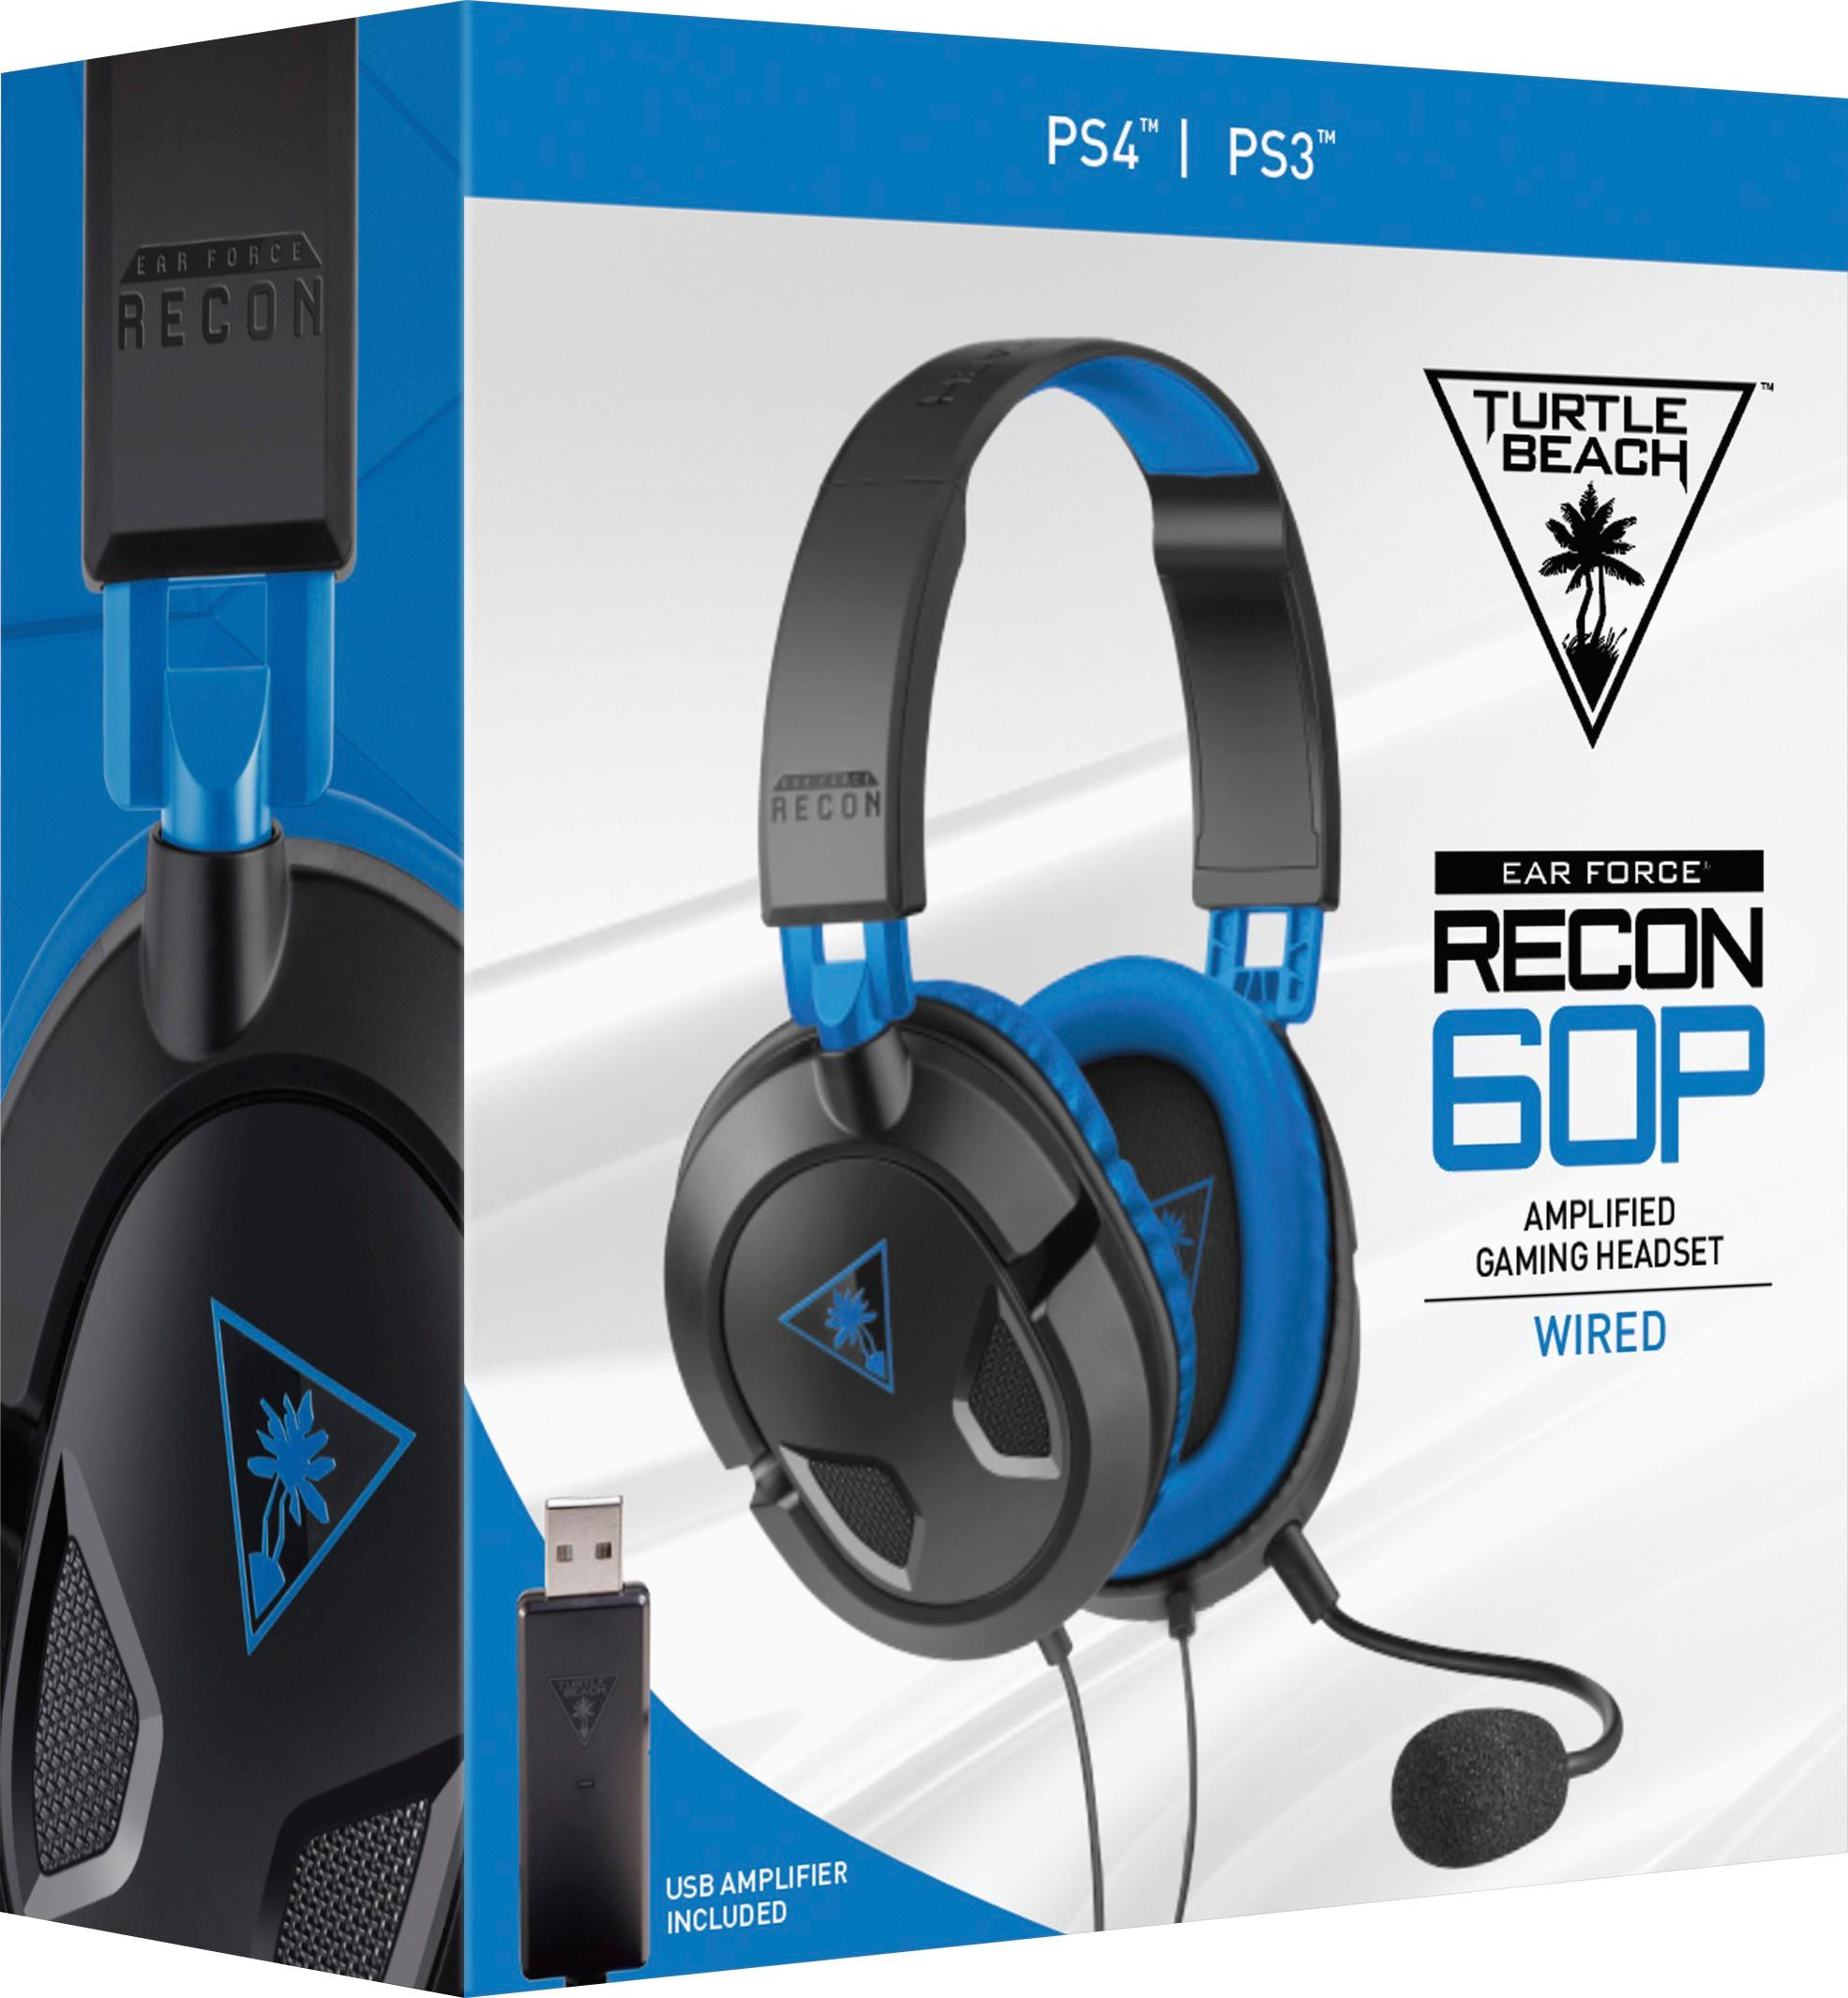 Wiring Diagram For Turtle Beach Recon on